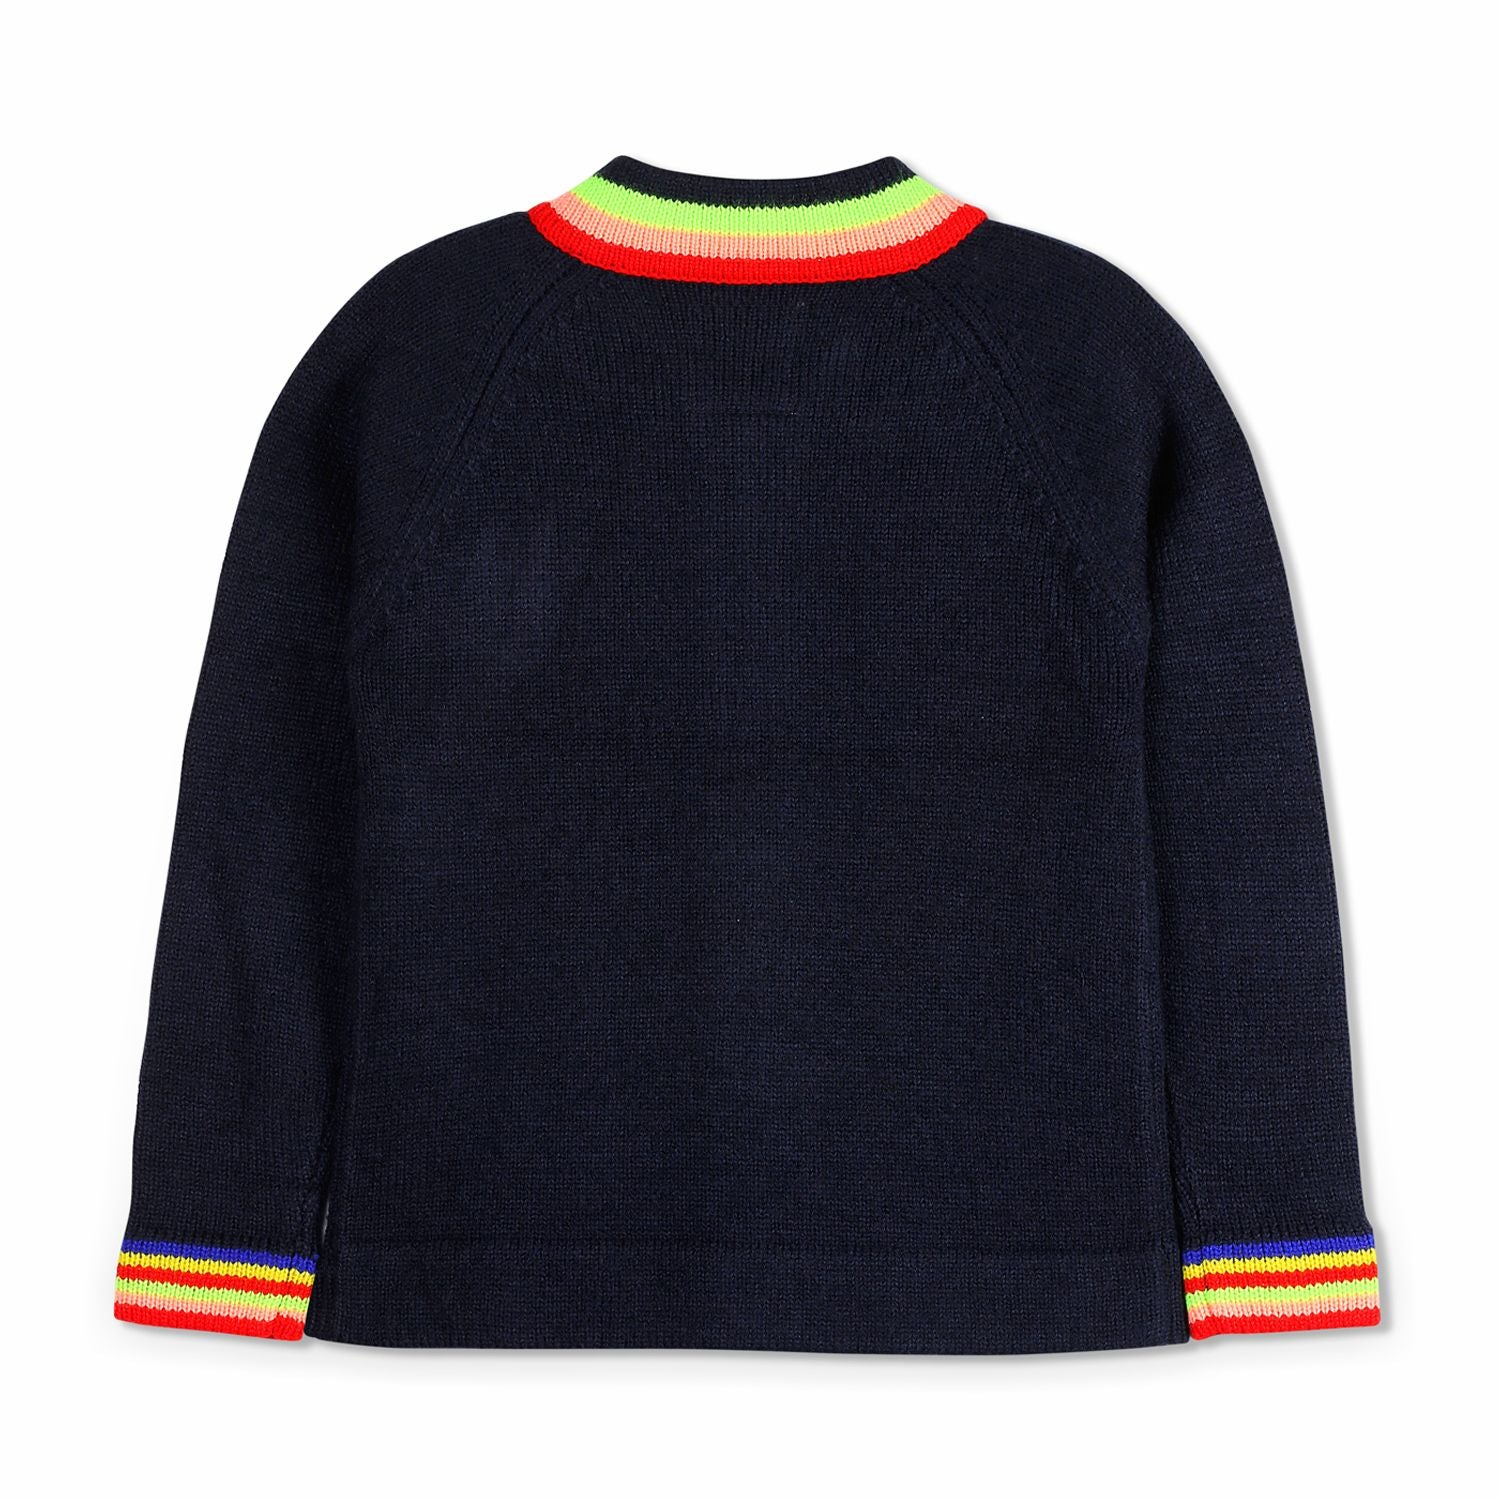 Stripe Knit Sweater for Boys